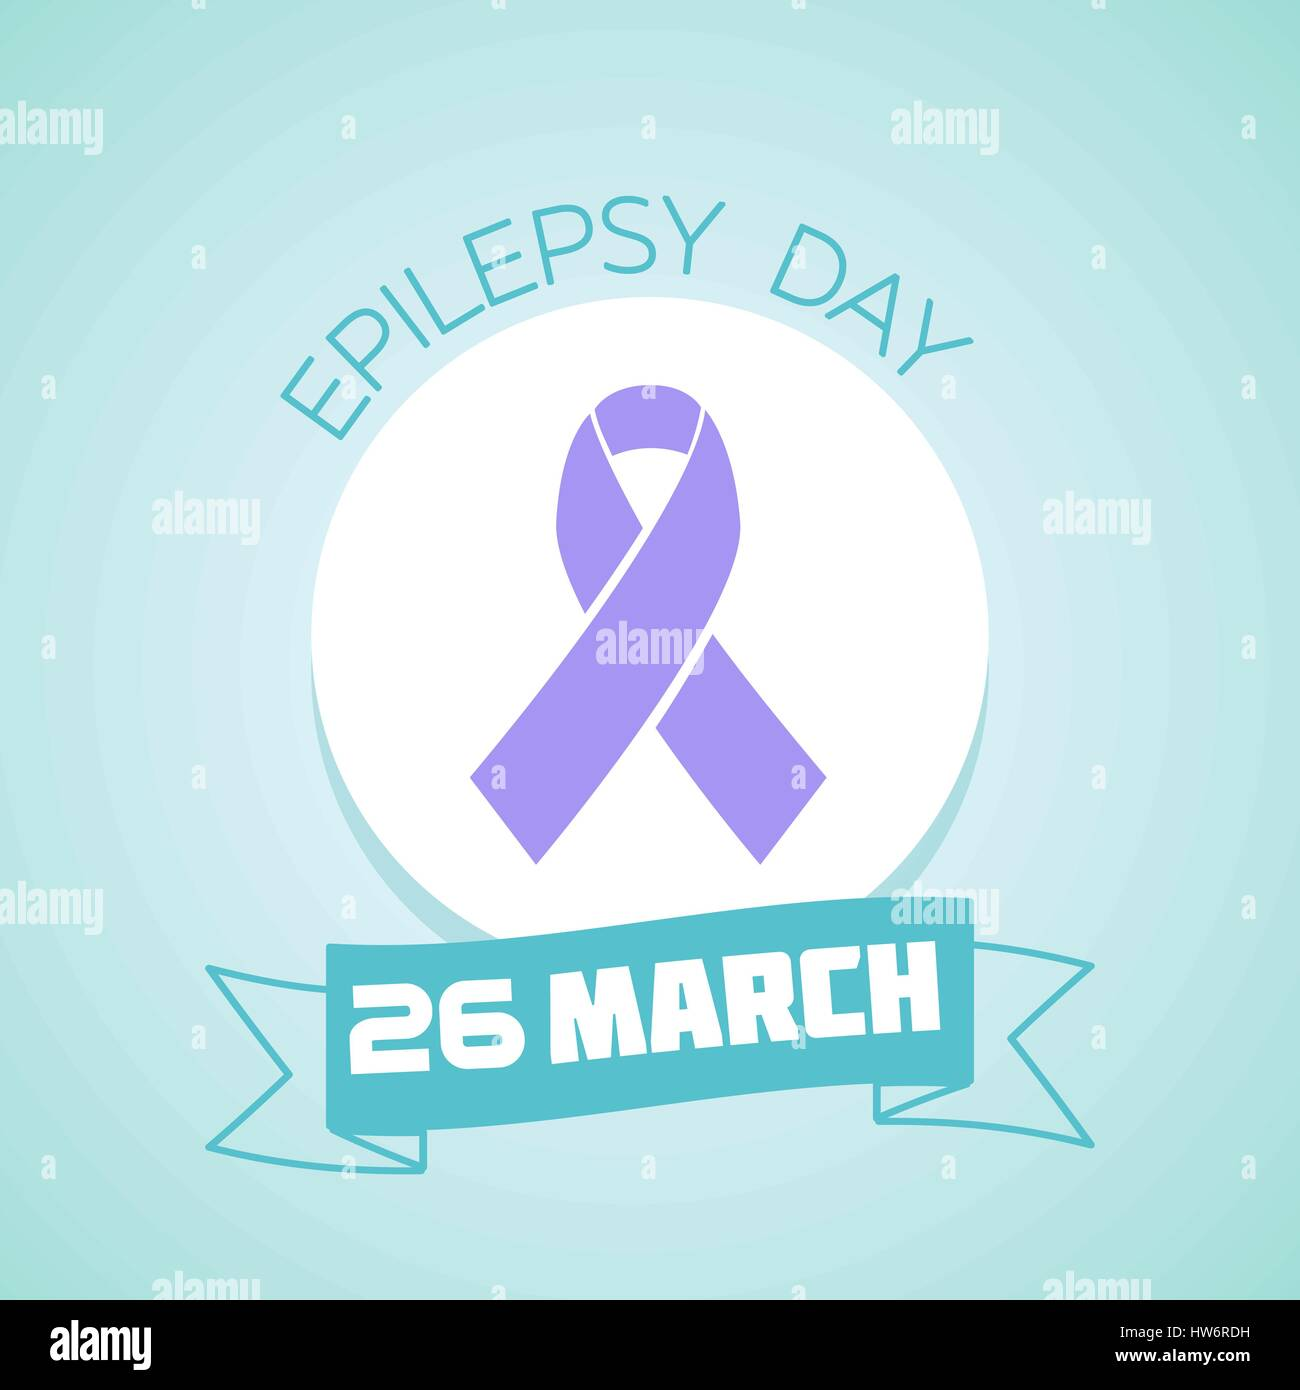 Calendar for each day on march 26 greeting card holiday epilepsy calendar for each day on march 26 greeting card holiday epilepsy day icon in the linear style kristyandbryce Images